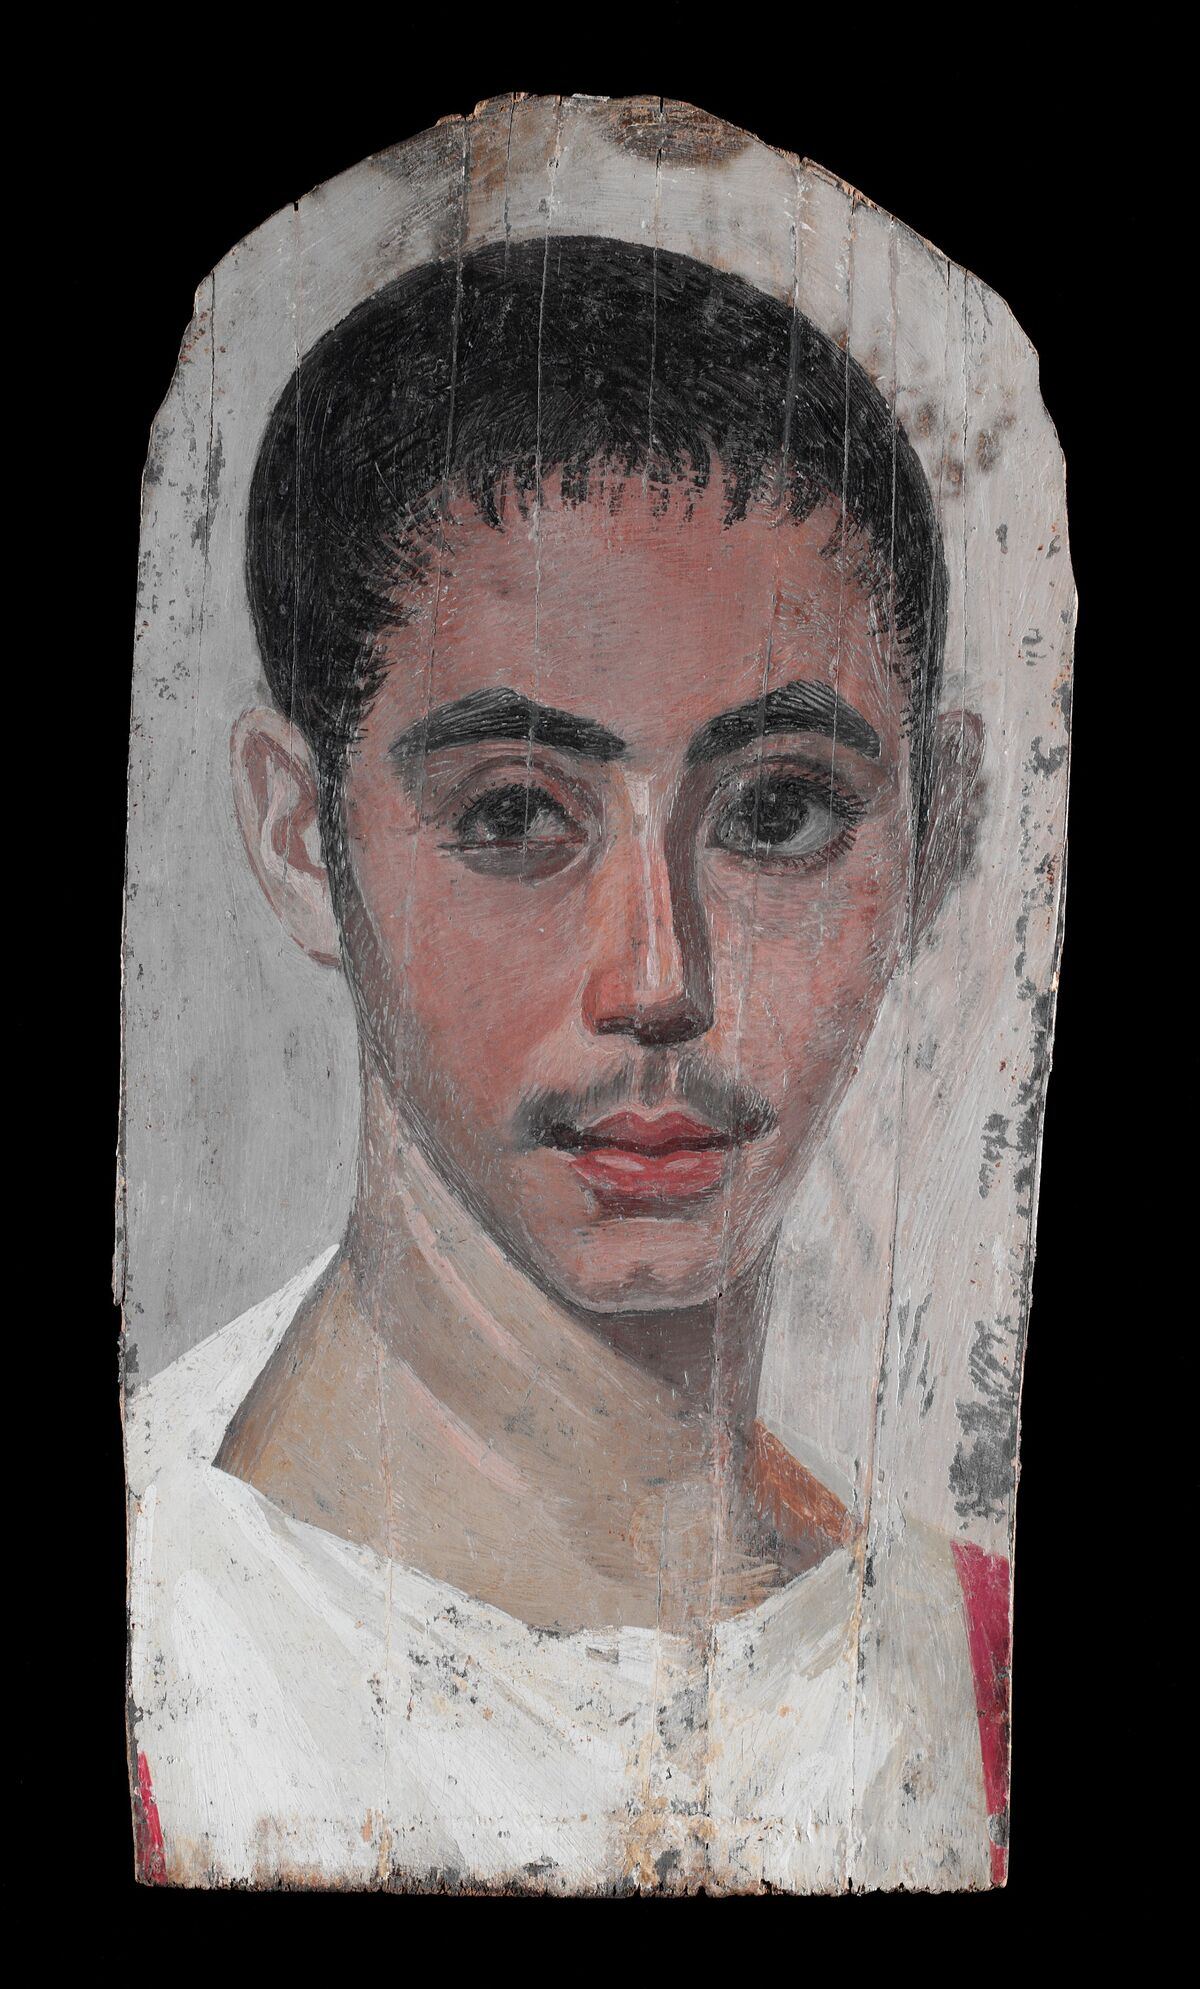 Portrait of a Youth with a Surgical Cut in one Eye, 190–210 C.E. Courtesy of The Metropolitan Museum of Art.